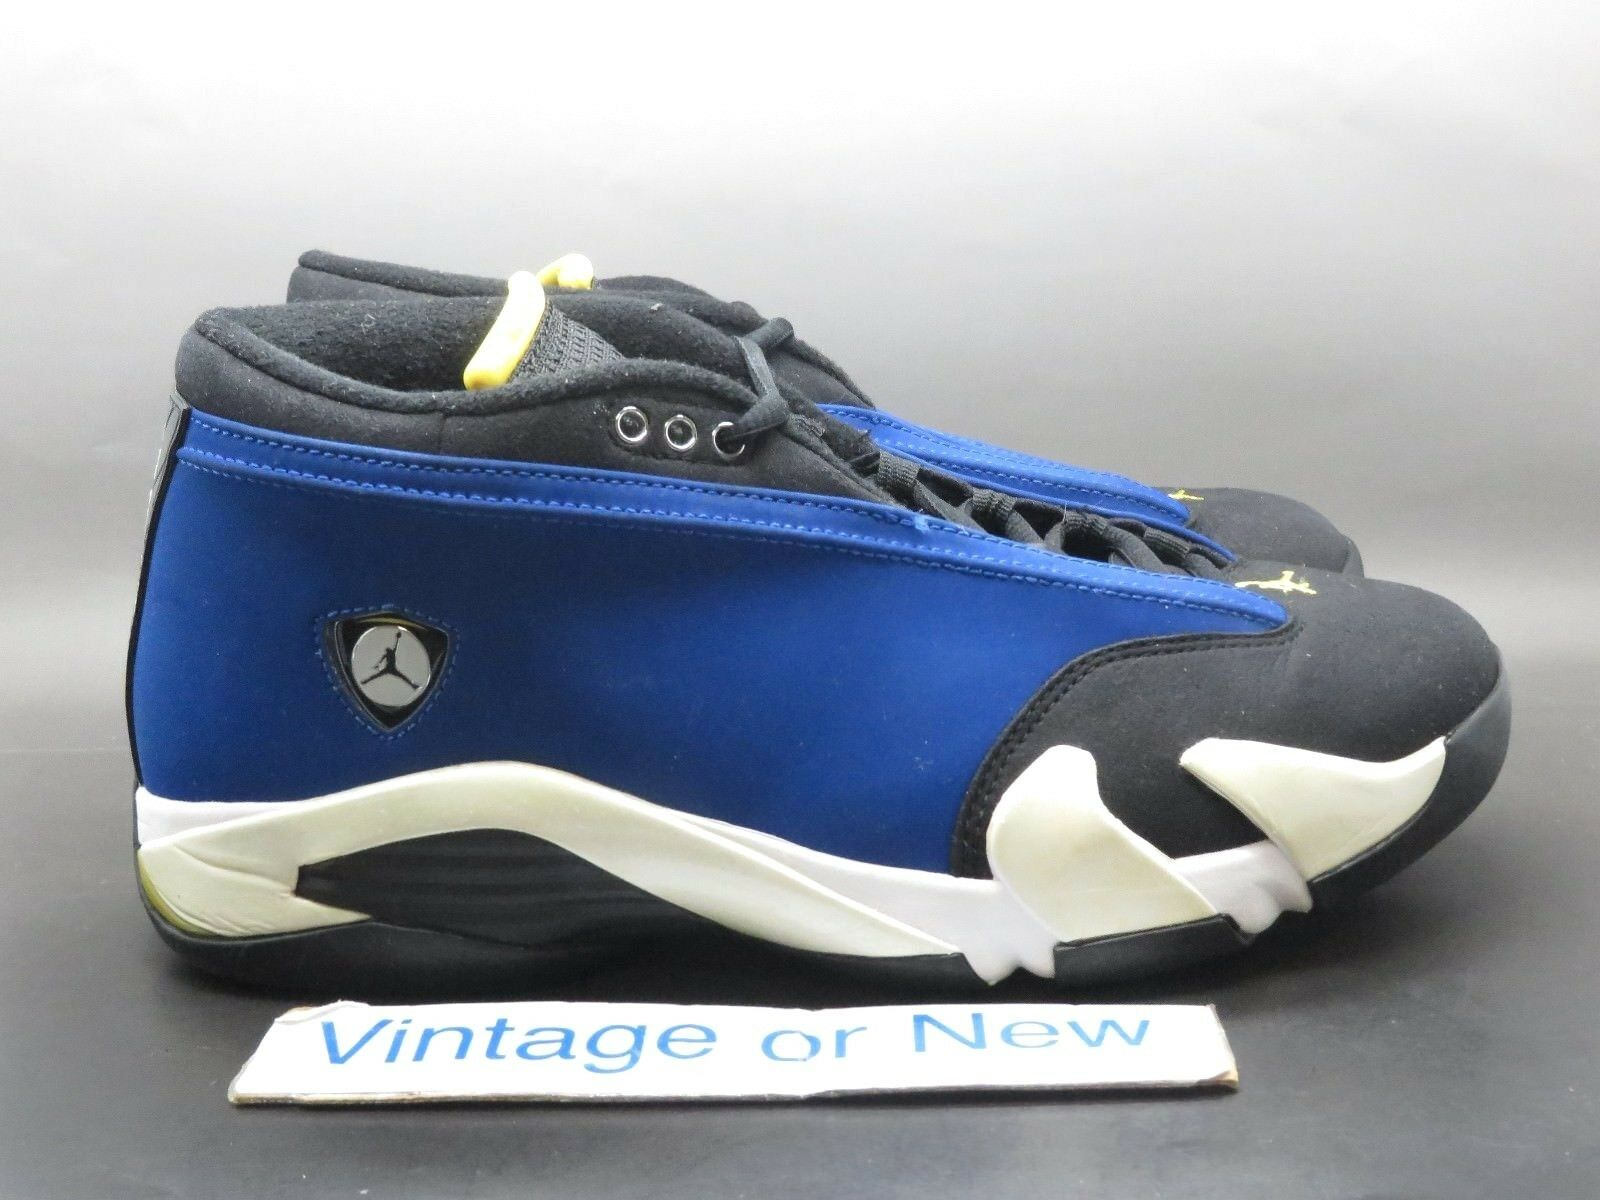 Nike Air Jordan XIV 14 Low Laney Retro 2015 sz 8.5